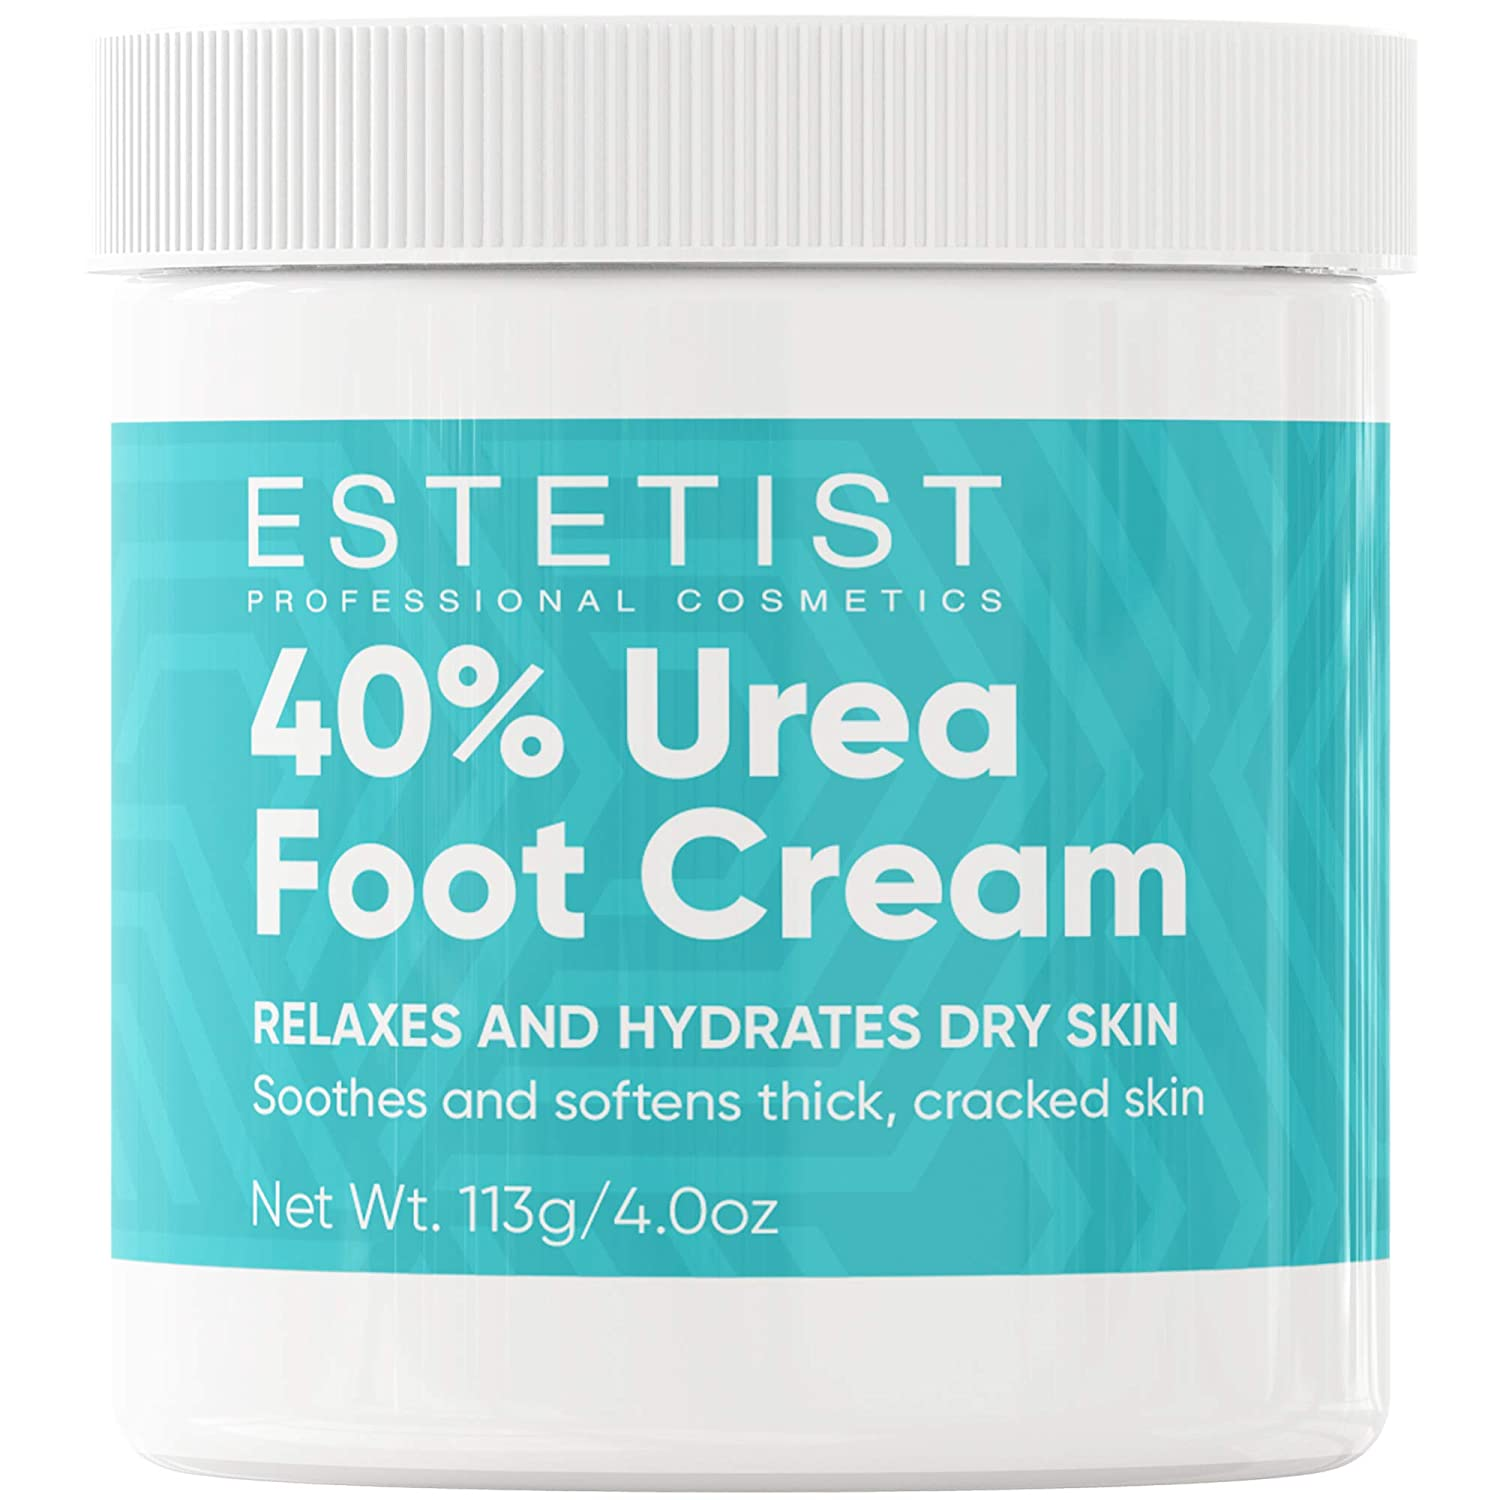 Urea Foot Cream 40%, Foot Lotion For Dry Cracked Feet, Moisturizer For Dry Skin